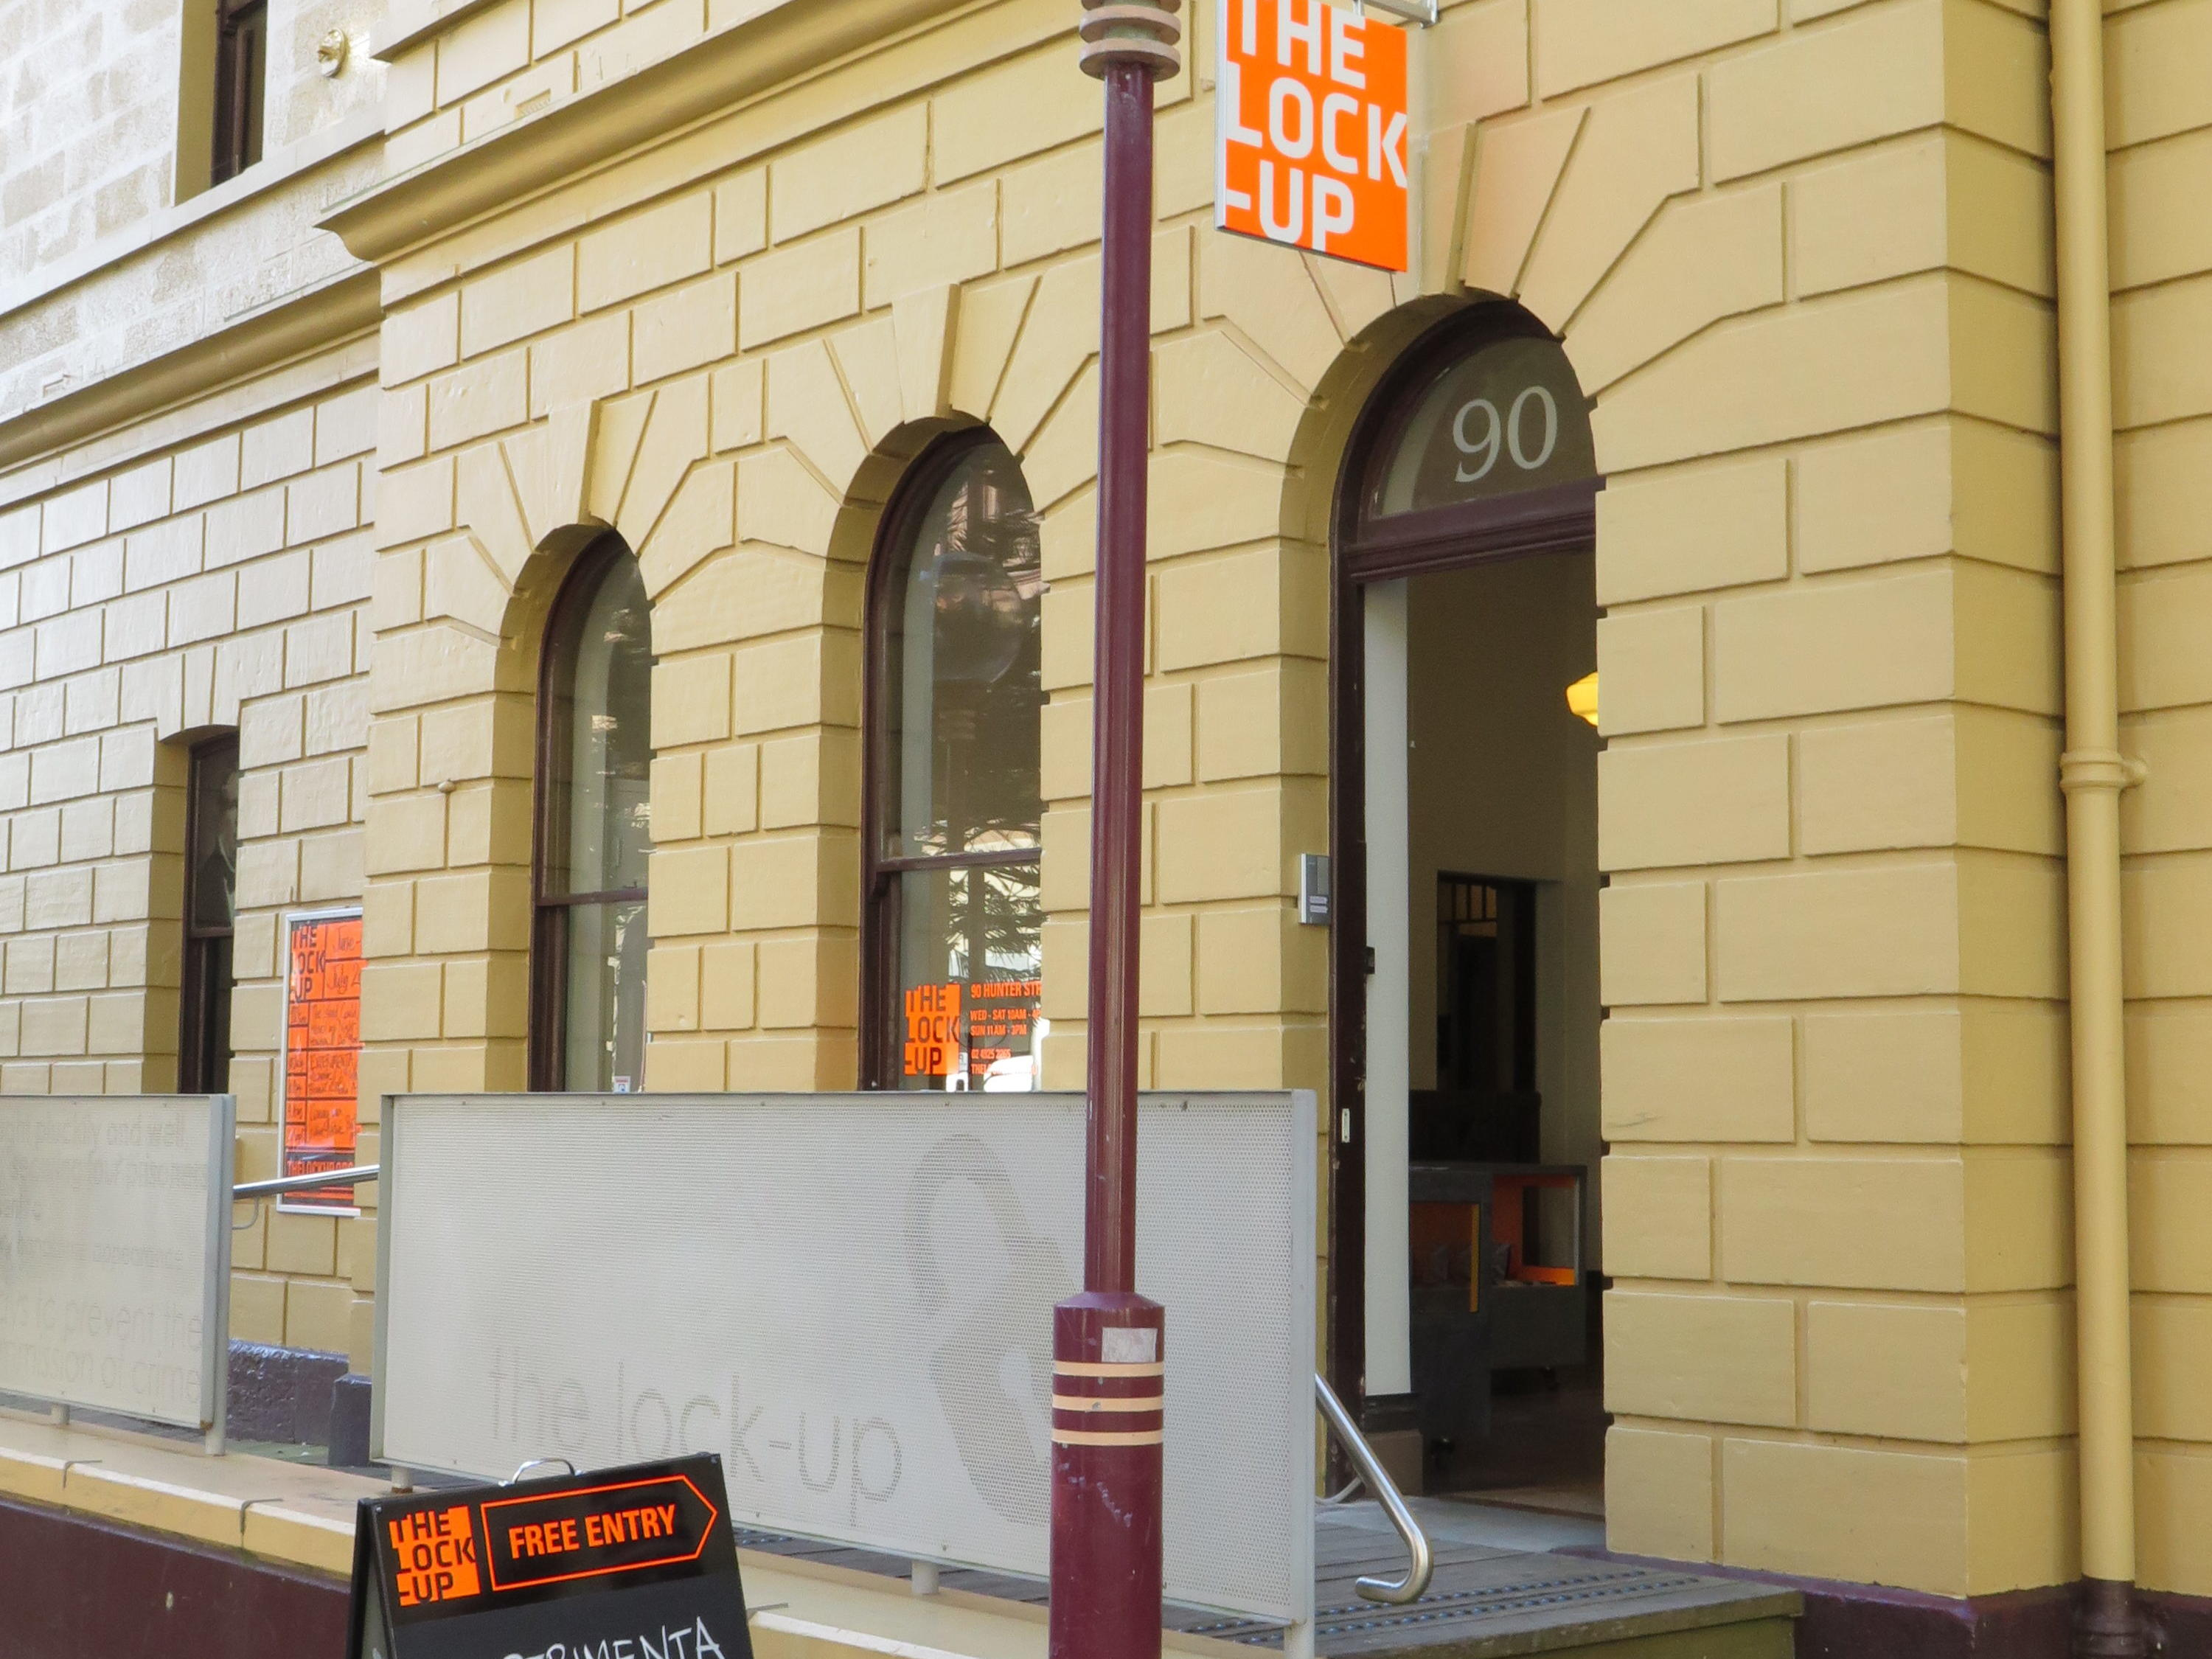 Entrance of The Lock-Up Gallery